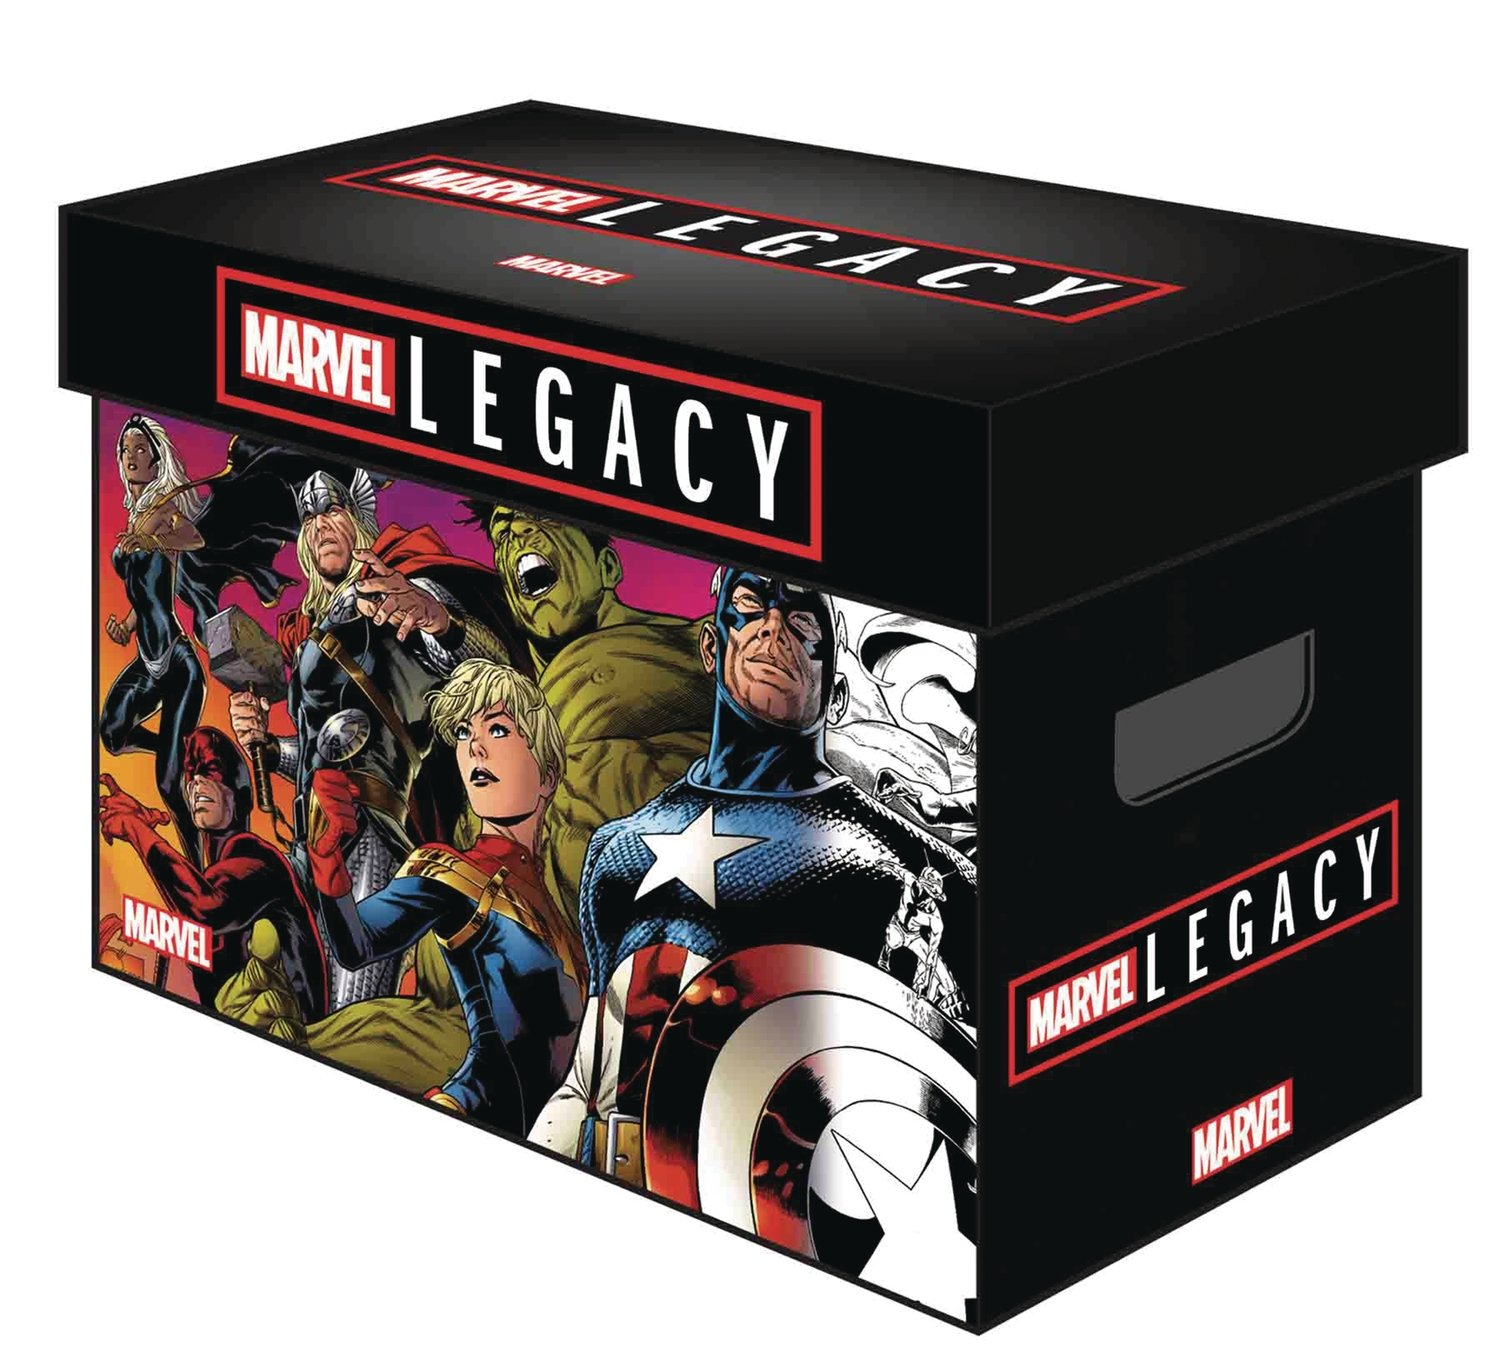 MARVEL GRAPHIC COMIC BOXES MARVEL LEGACY